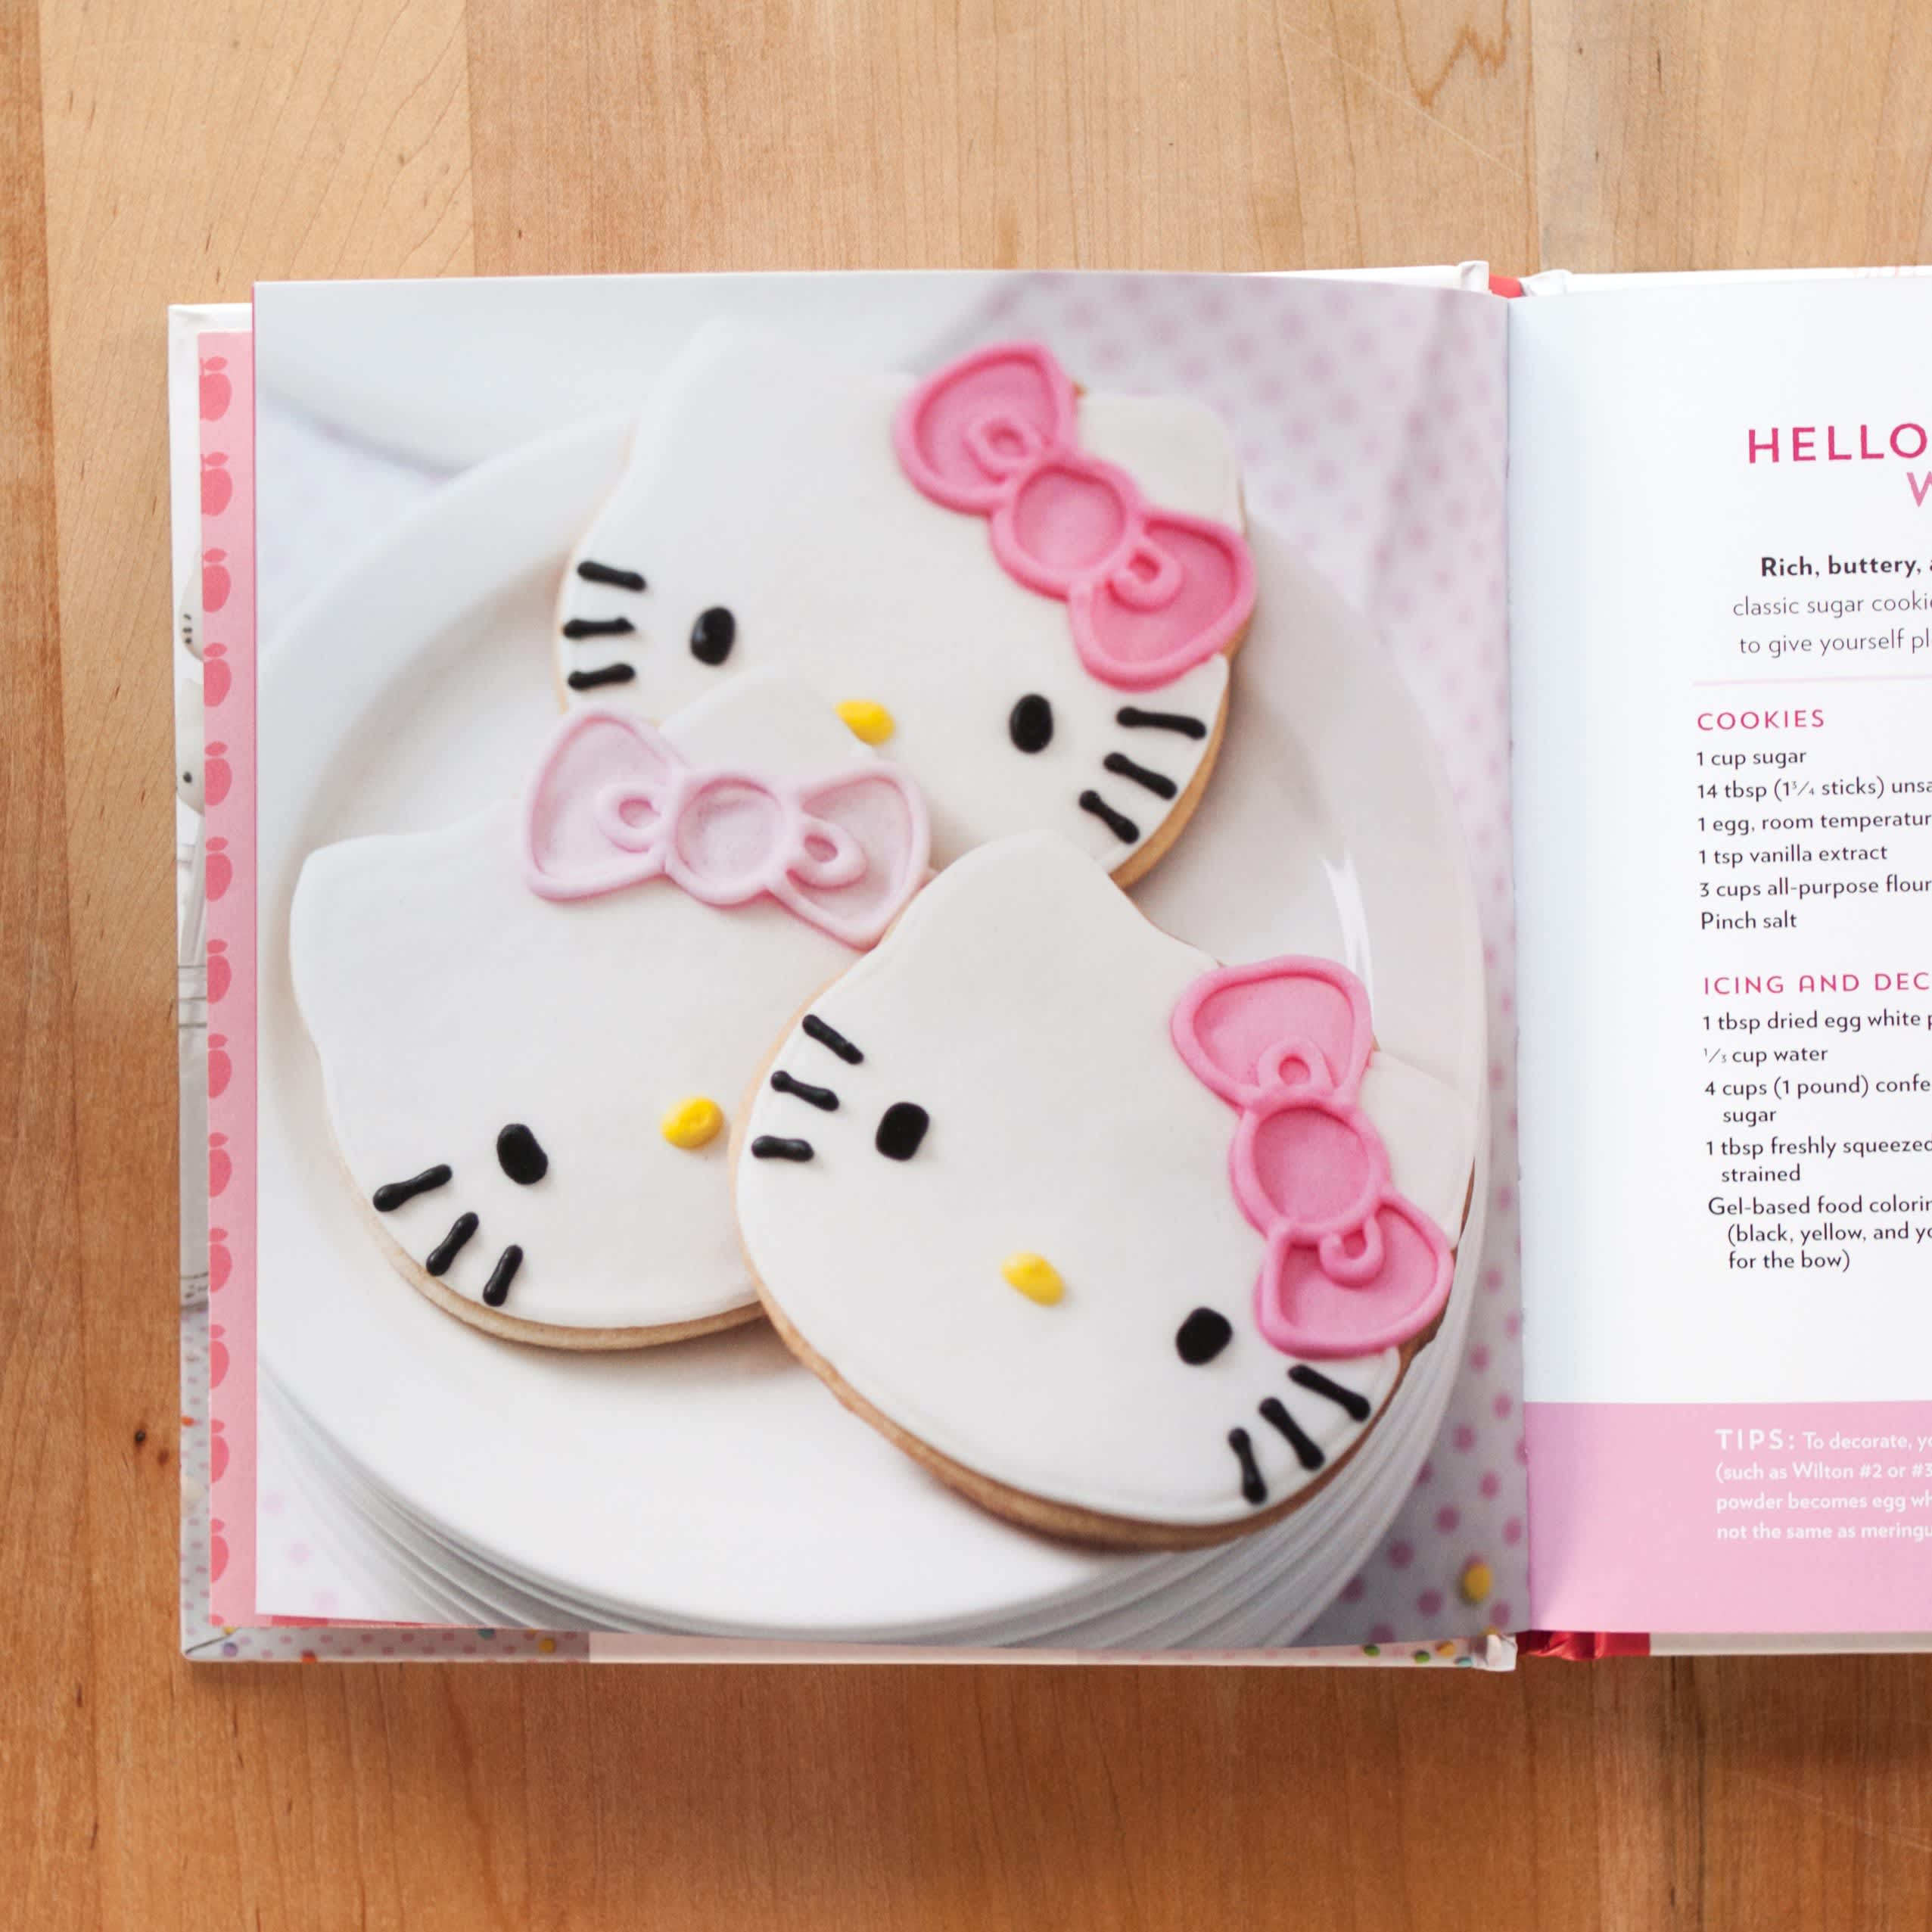 Why Bake a Cake When You Can Bake a Hello Kitty Cake?: gallery image 5